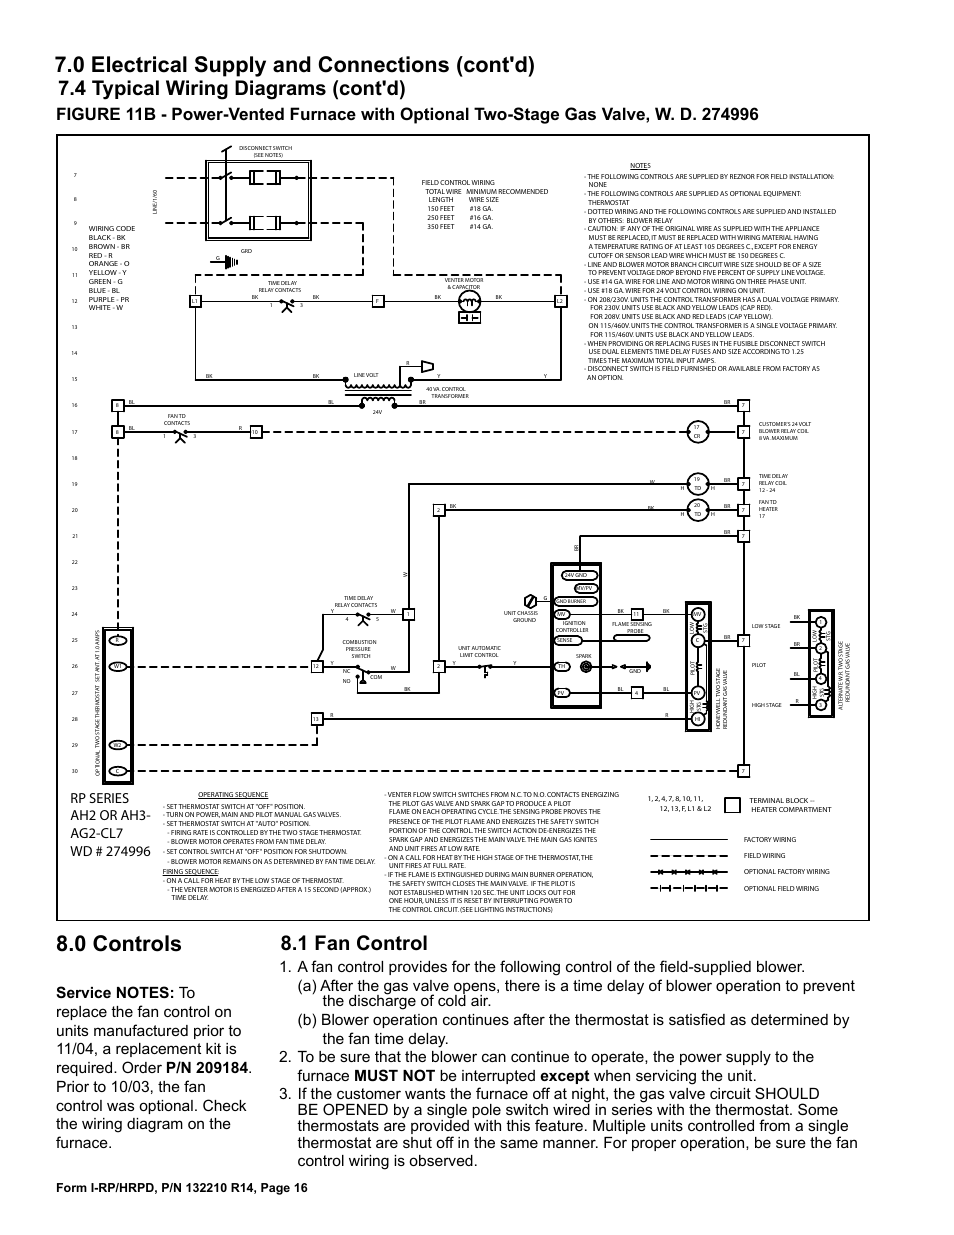 Typical Control Wiring On Furnace Reznor Electrical Diagrams Kenworth Engine Fan Solenoid Diagram 1 4 Cont D Hrpd Rh Manualsdir Com Old